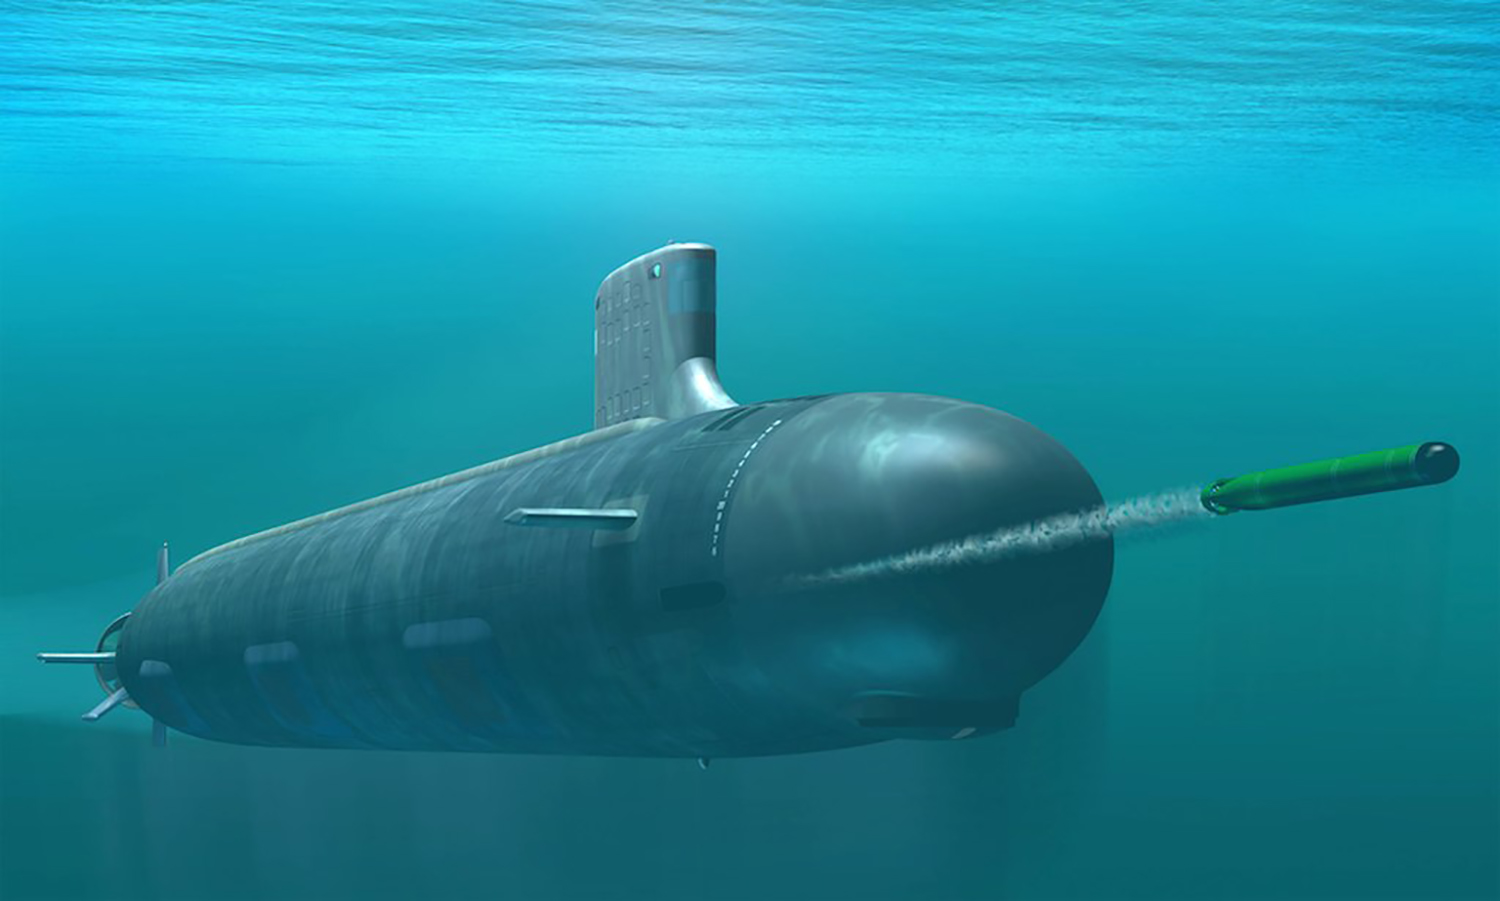 A conceptual drawing shows the Virginia-class attack submarine then under construction at General Dynamics Electric Boat in Groton, Conn., and Northrop Grumman Newport News Shipbuilding in Newport News, Virginia, as envisioned during development in 2003.